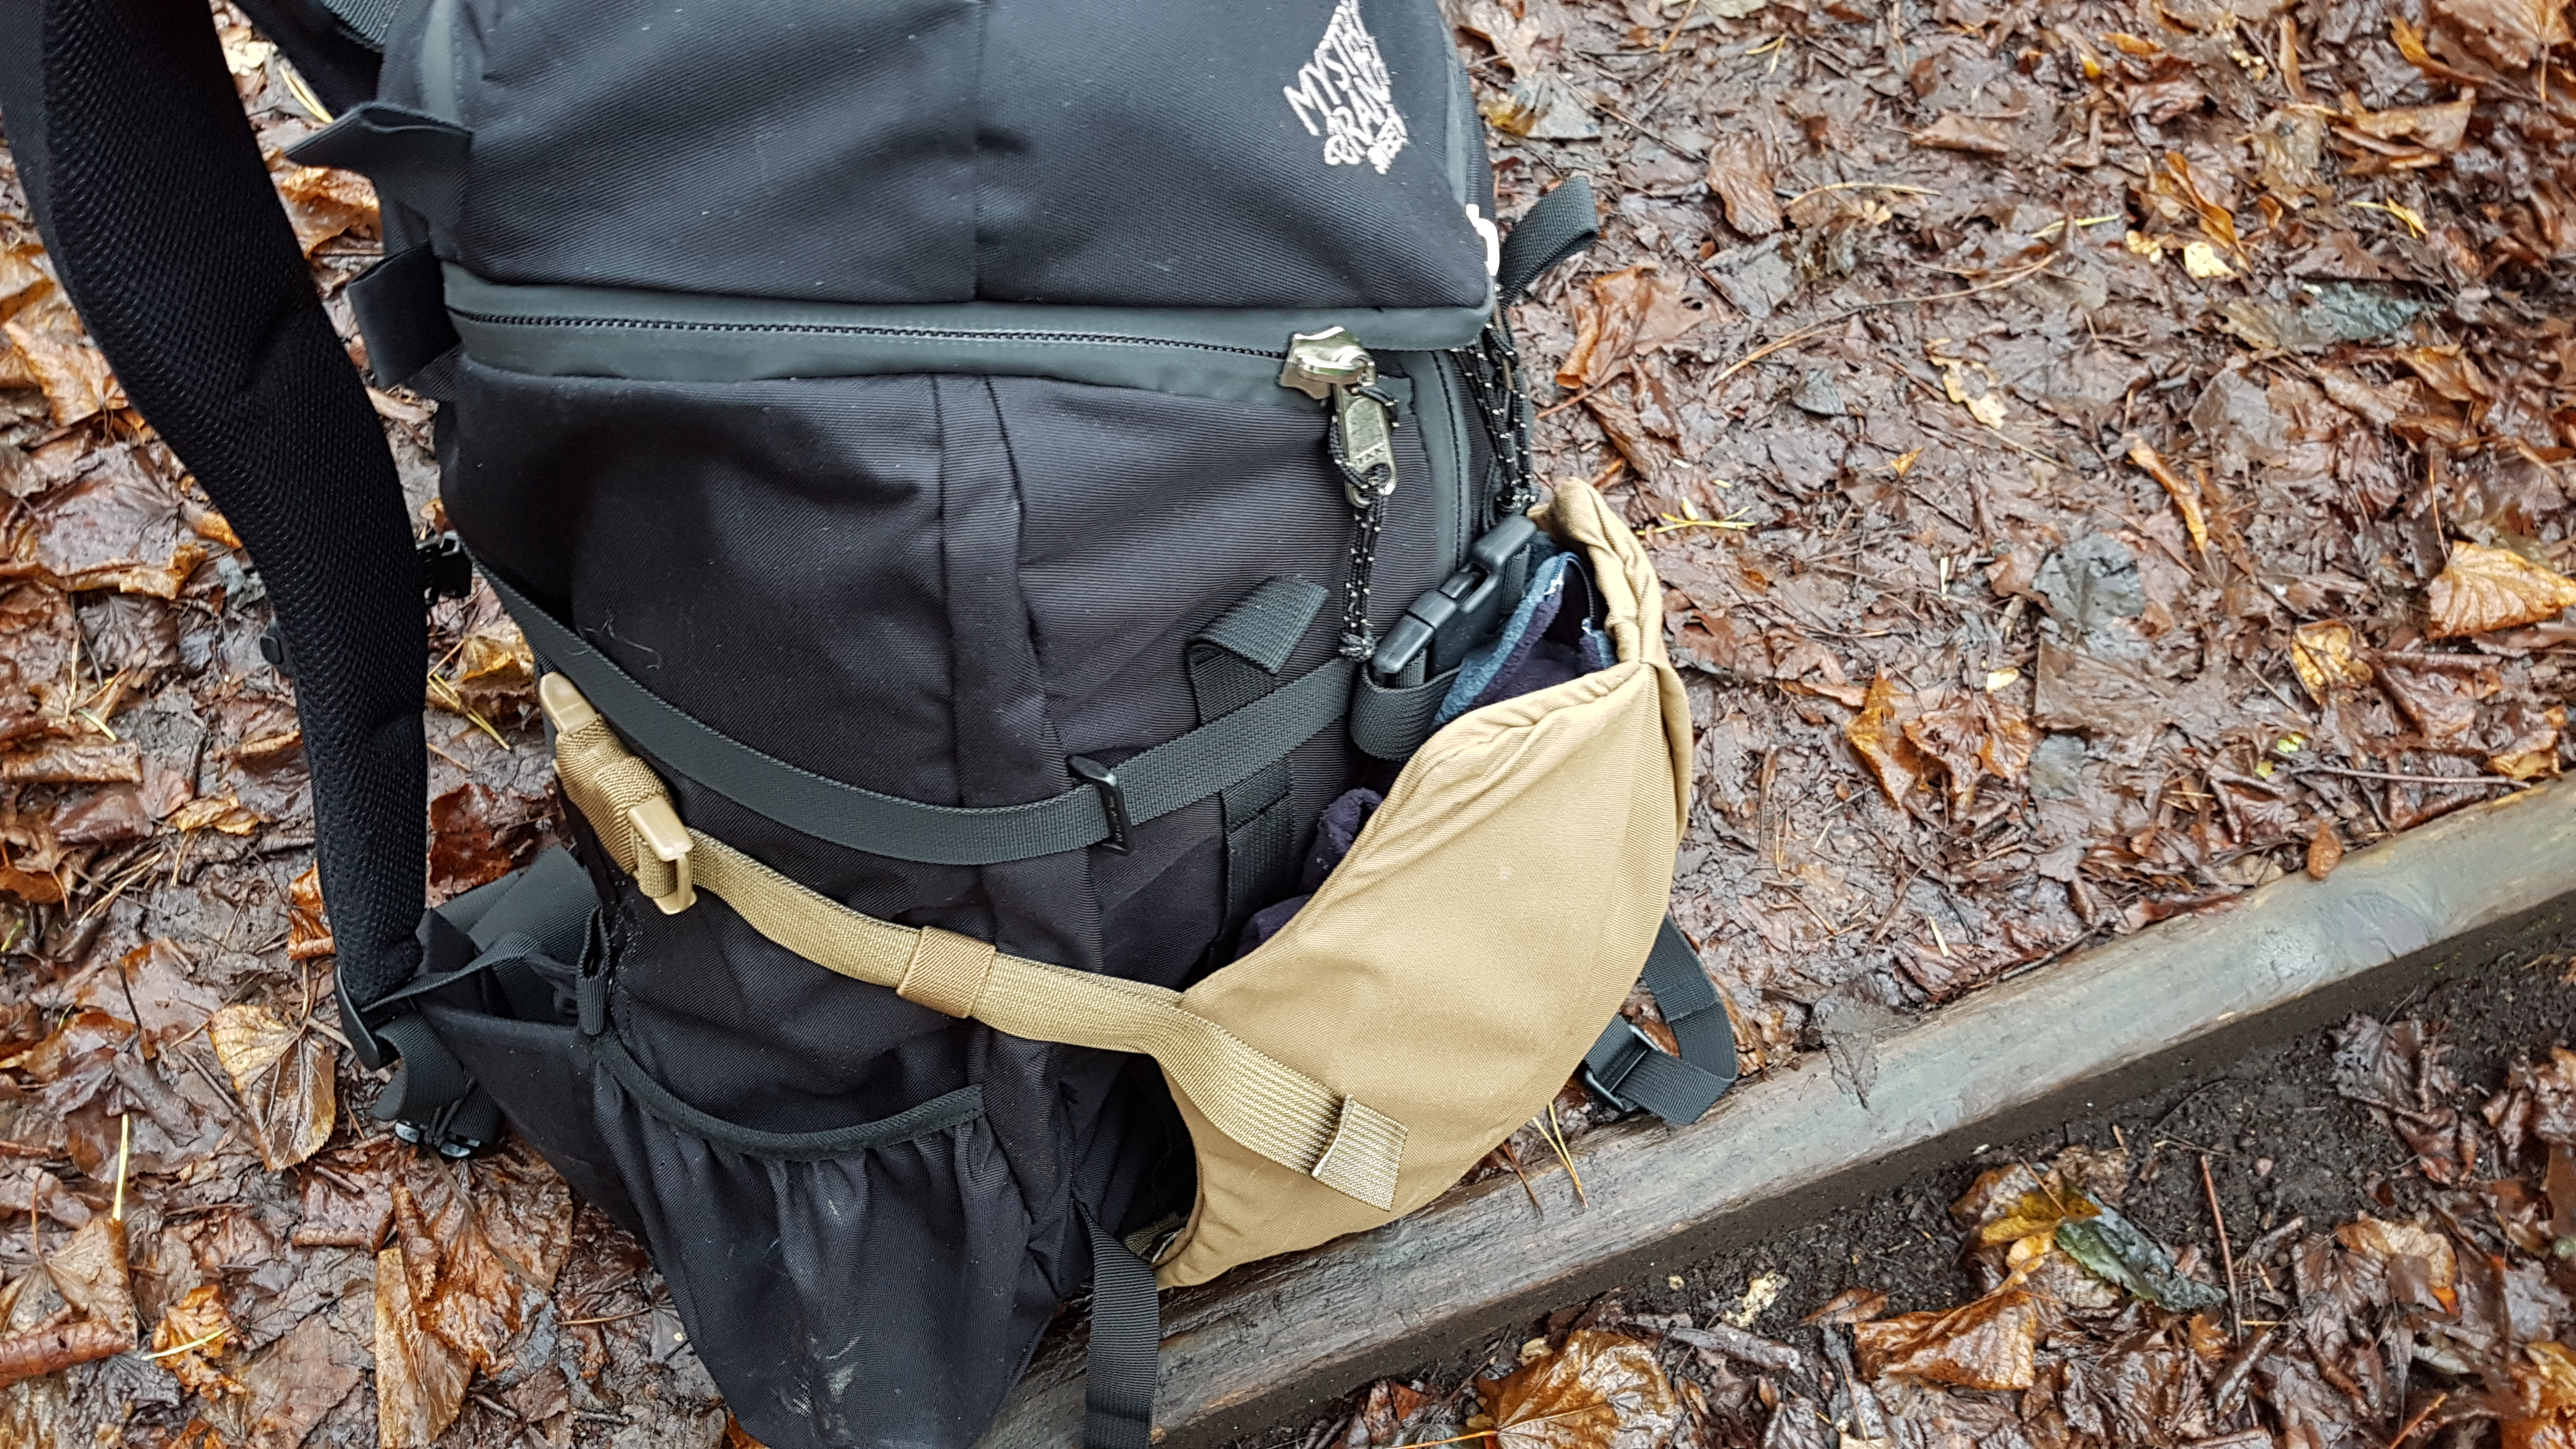 Beavertail Showdown stick it side profile attached to 3 day assault pack